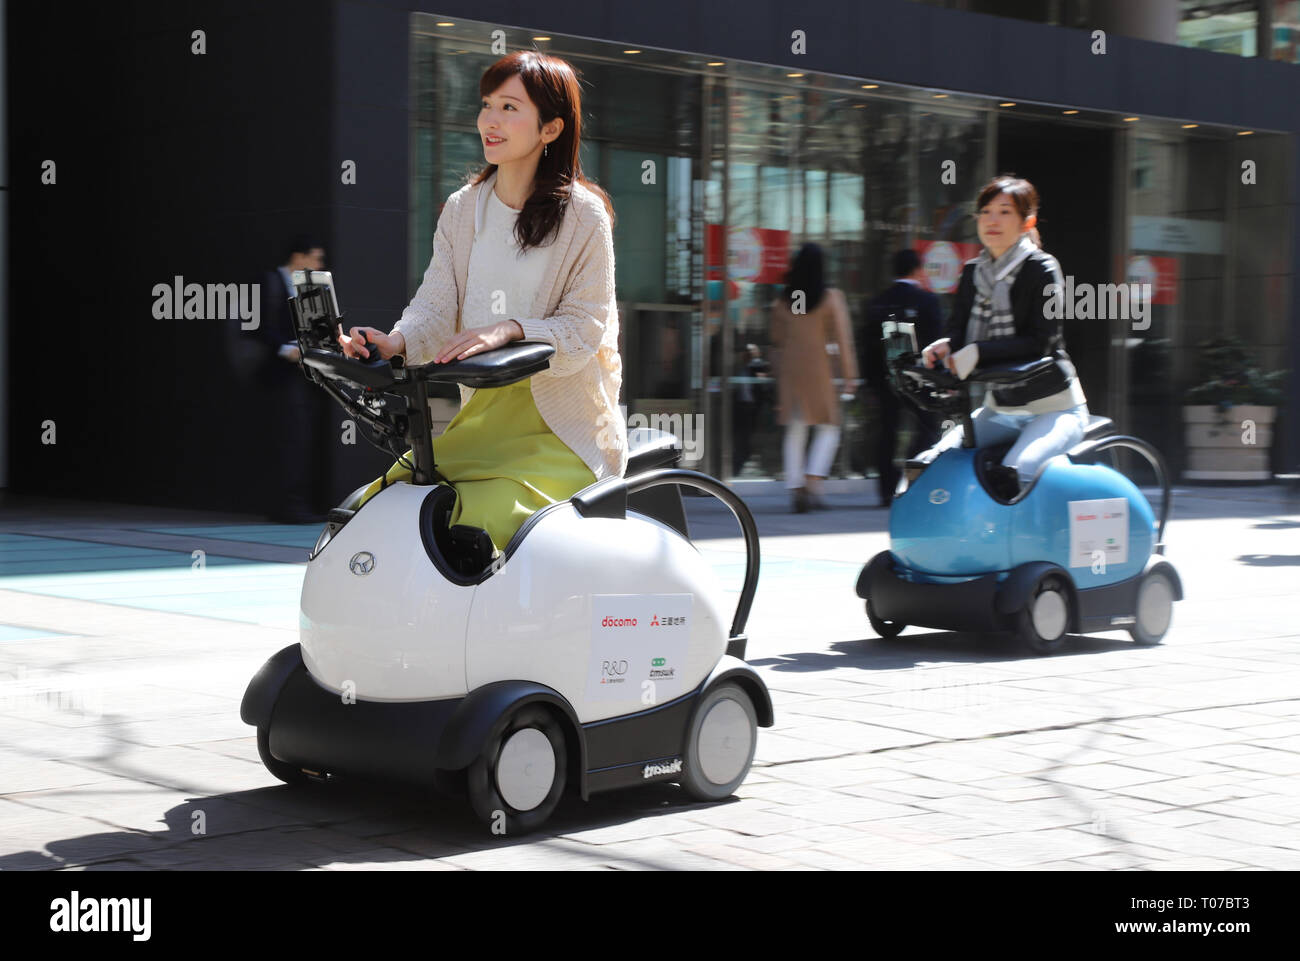 Tokyo, Japan. 18th Mar, 2019. Models demonstrate Japanese robot company Tmsuk personal mobility 'Rodem' in Tokyo on Monday, March 18, 2019. NTT Docomo, Mitsubishi Estate and Tmsuk started a field test to drive Rodem on the road in Marunouchi for sightseers. Credit: Yoshio Tsunoda/AFLO/Alamy Live News - Stock Image